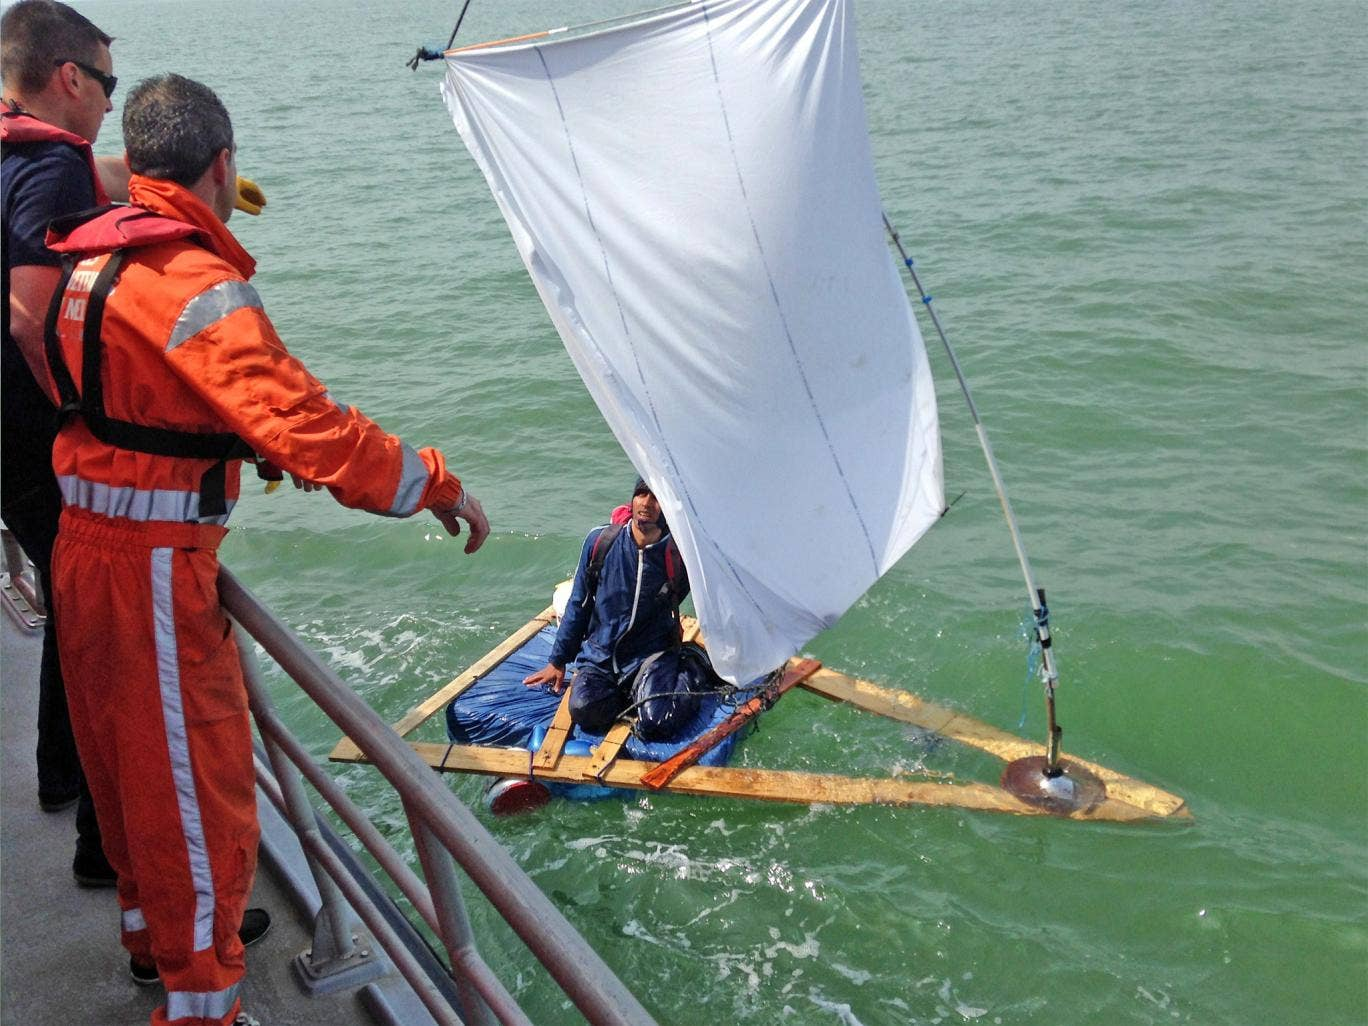 The French coastguard coming to the rescue of the Afghan aboard his home-made raft near Calais